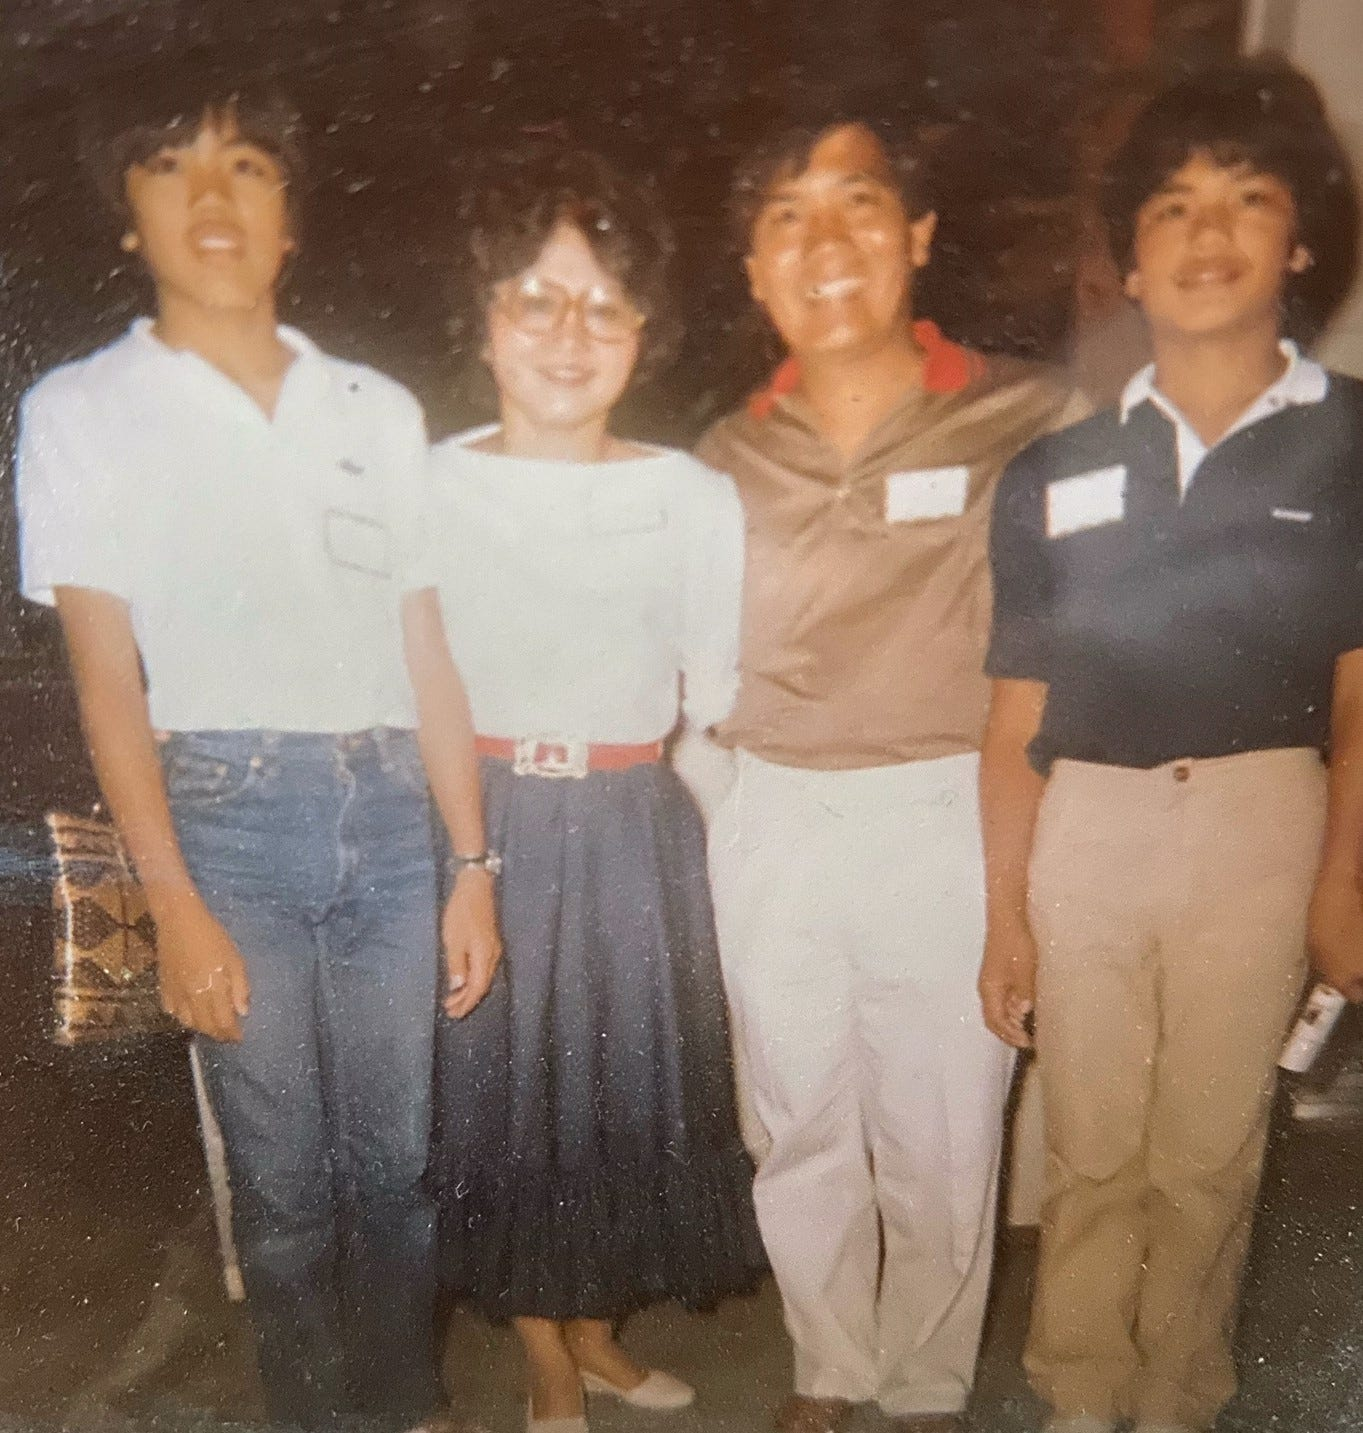 The Laudencia family in the 1970s